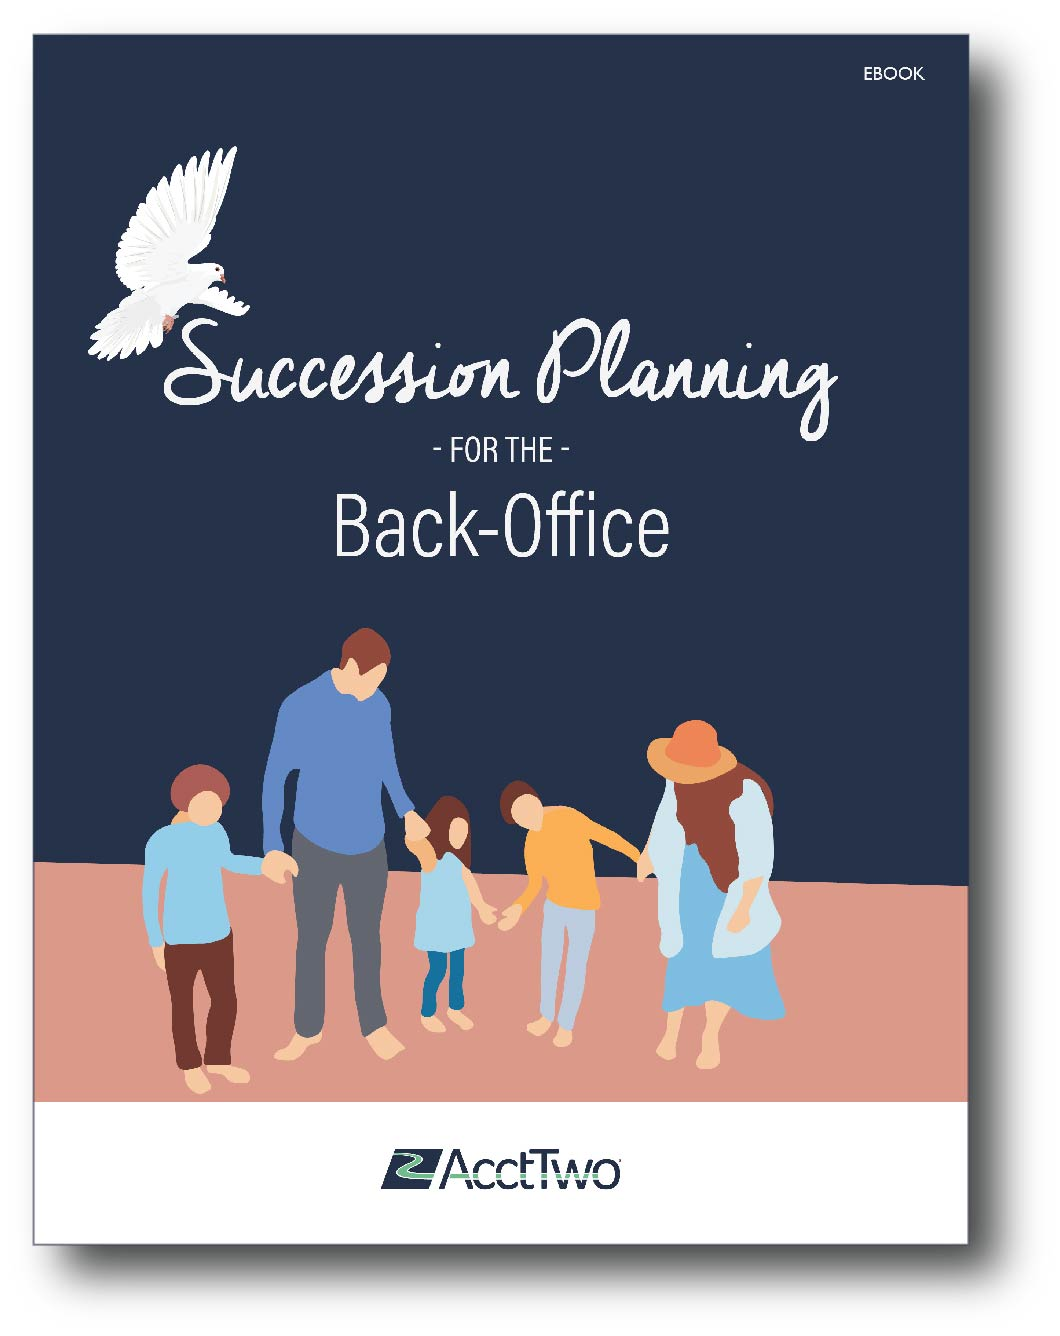 Nonprofit Succession Planning eBook Helps Churches Avoid Back-Office Chaos